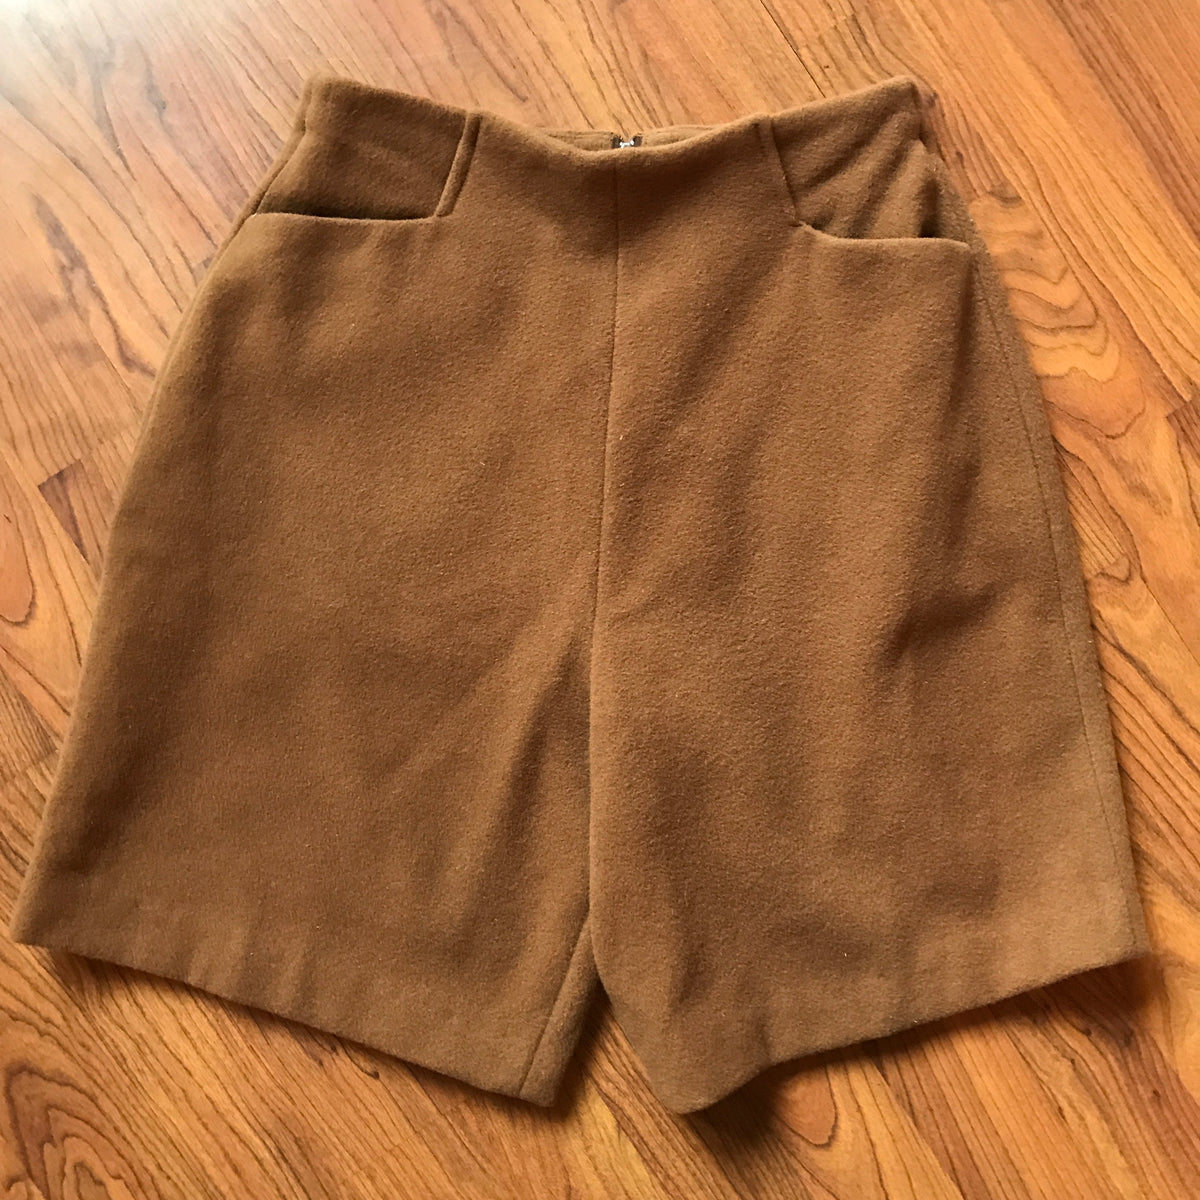 1980s Vintage Brown Blazer and Shorts Set